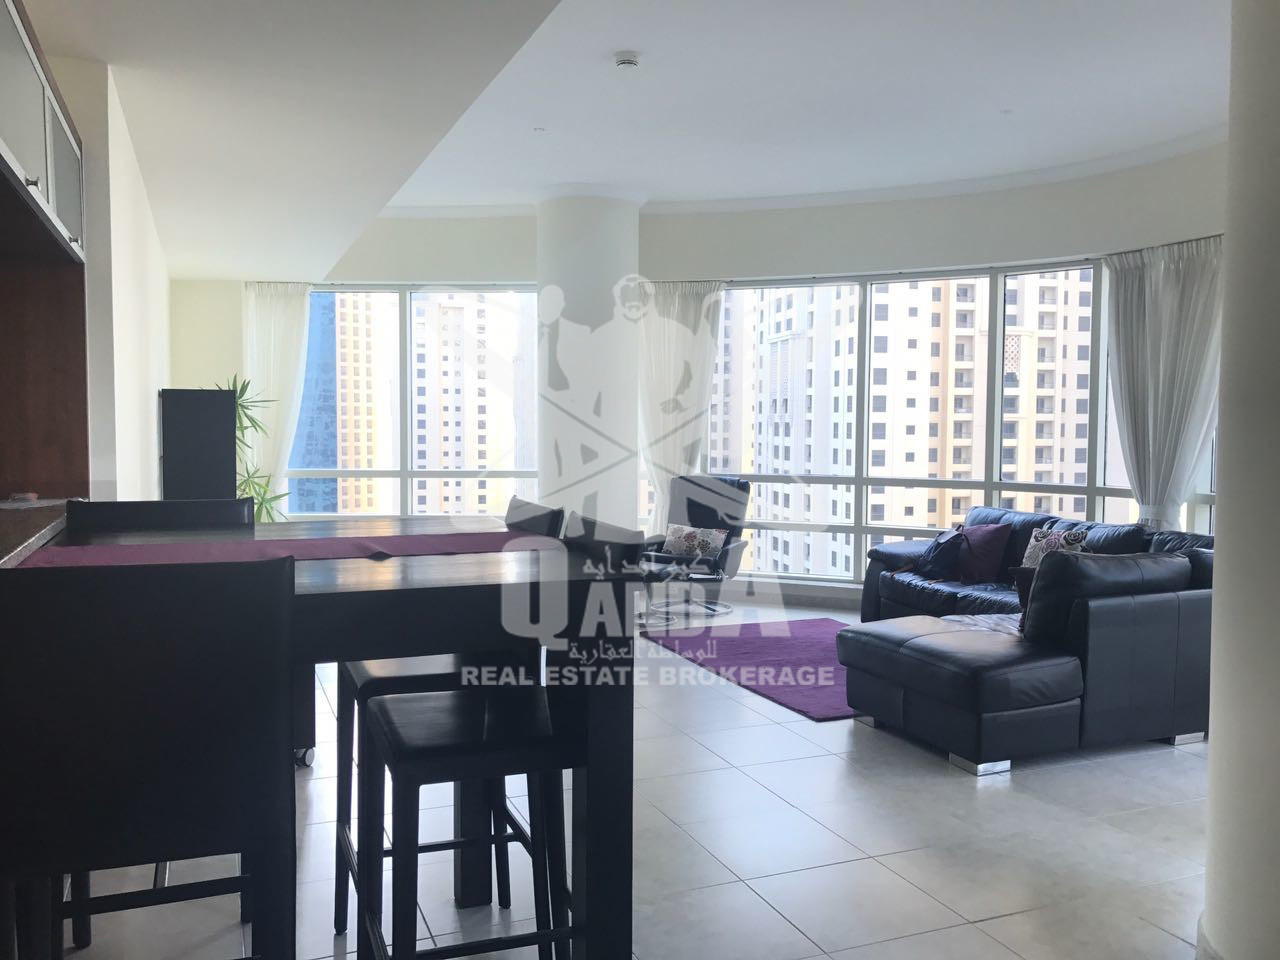 More than Better 2 Bedroom Apartment in Al Sahab 2 - Image 3